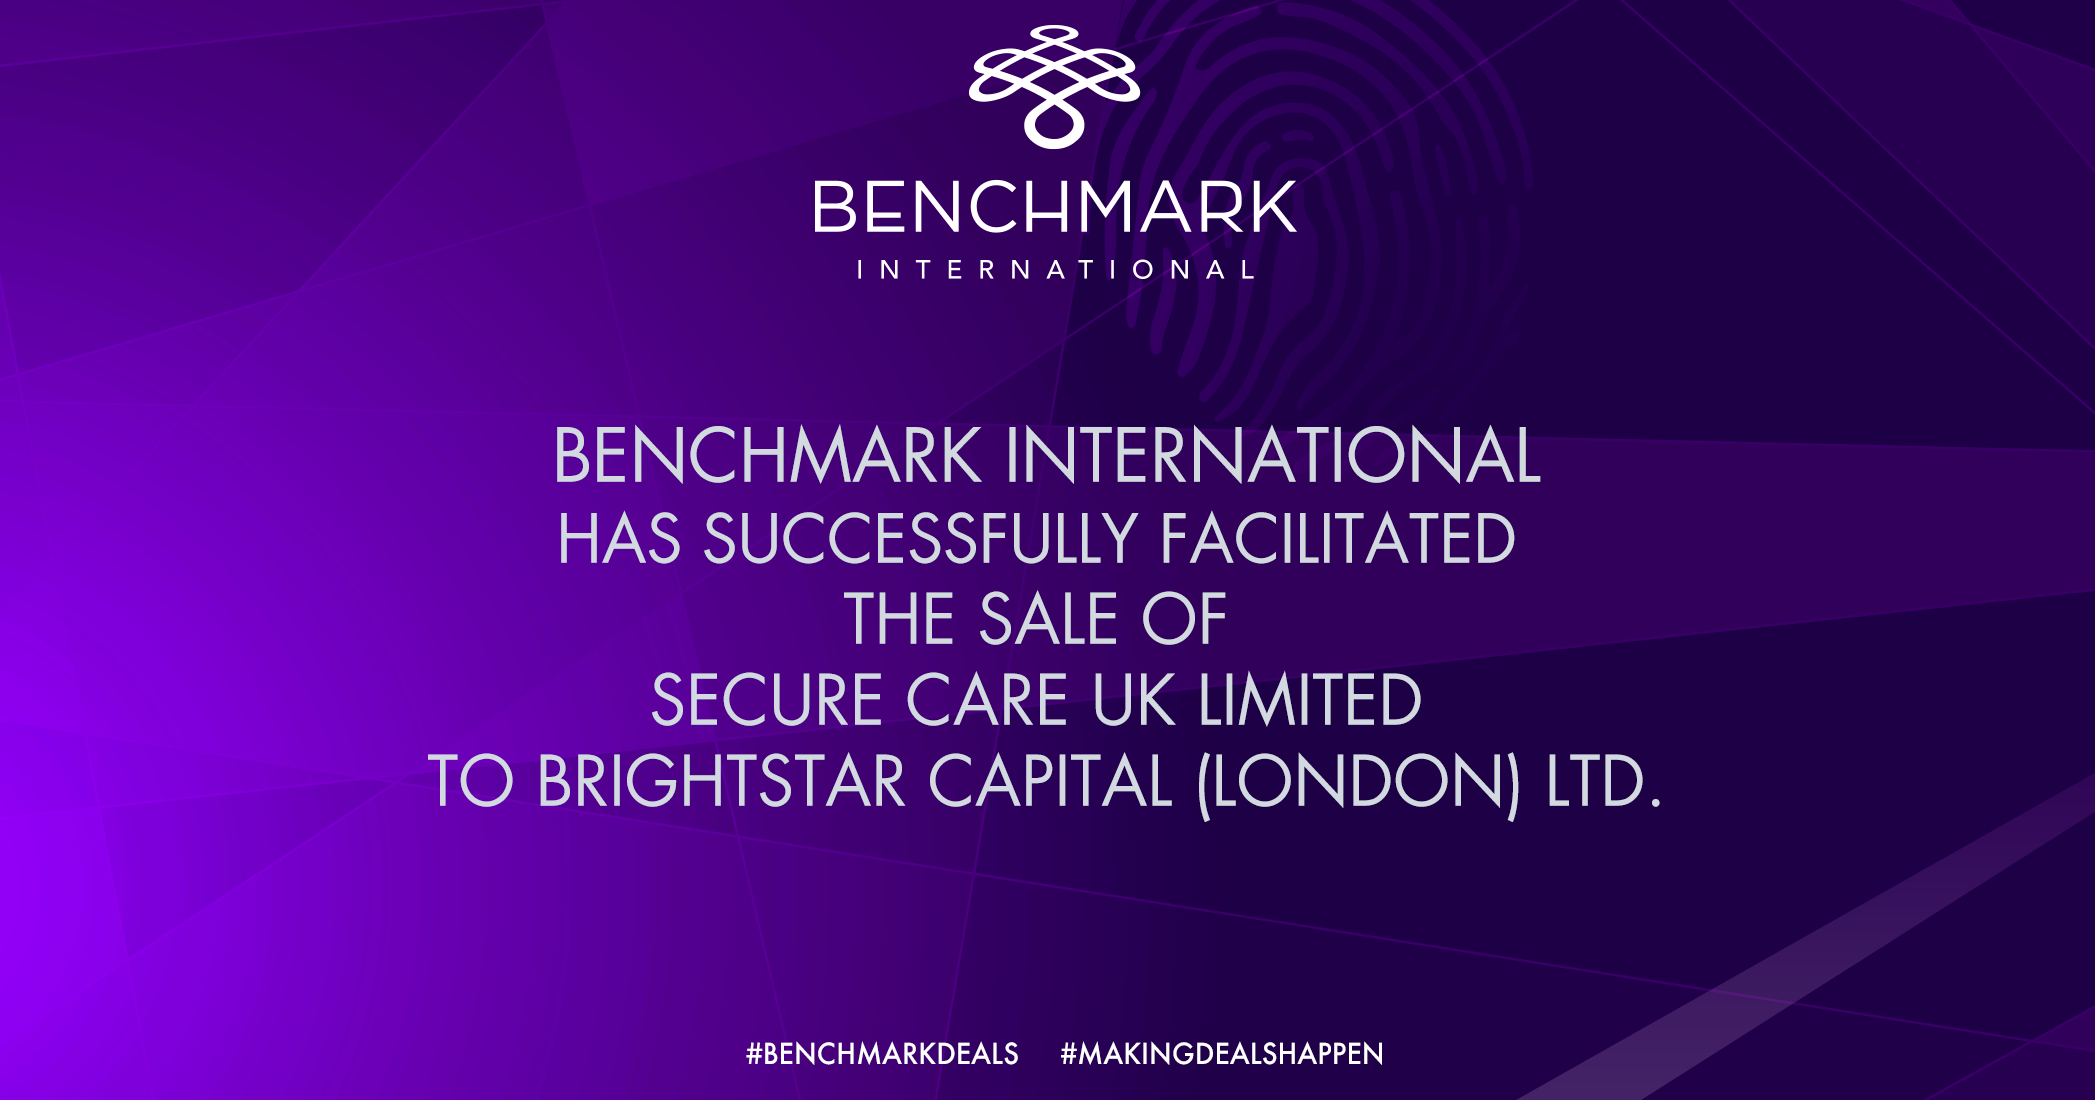 Benchmark International has Successfully Facilitated the Sale of Secure Care UK Limited to BrightStar Capital (London) Ltd